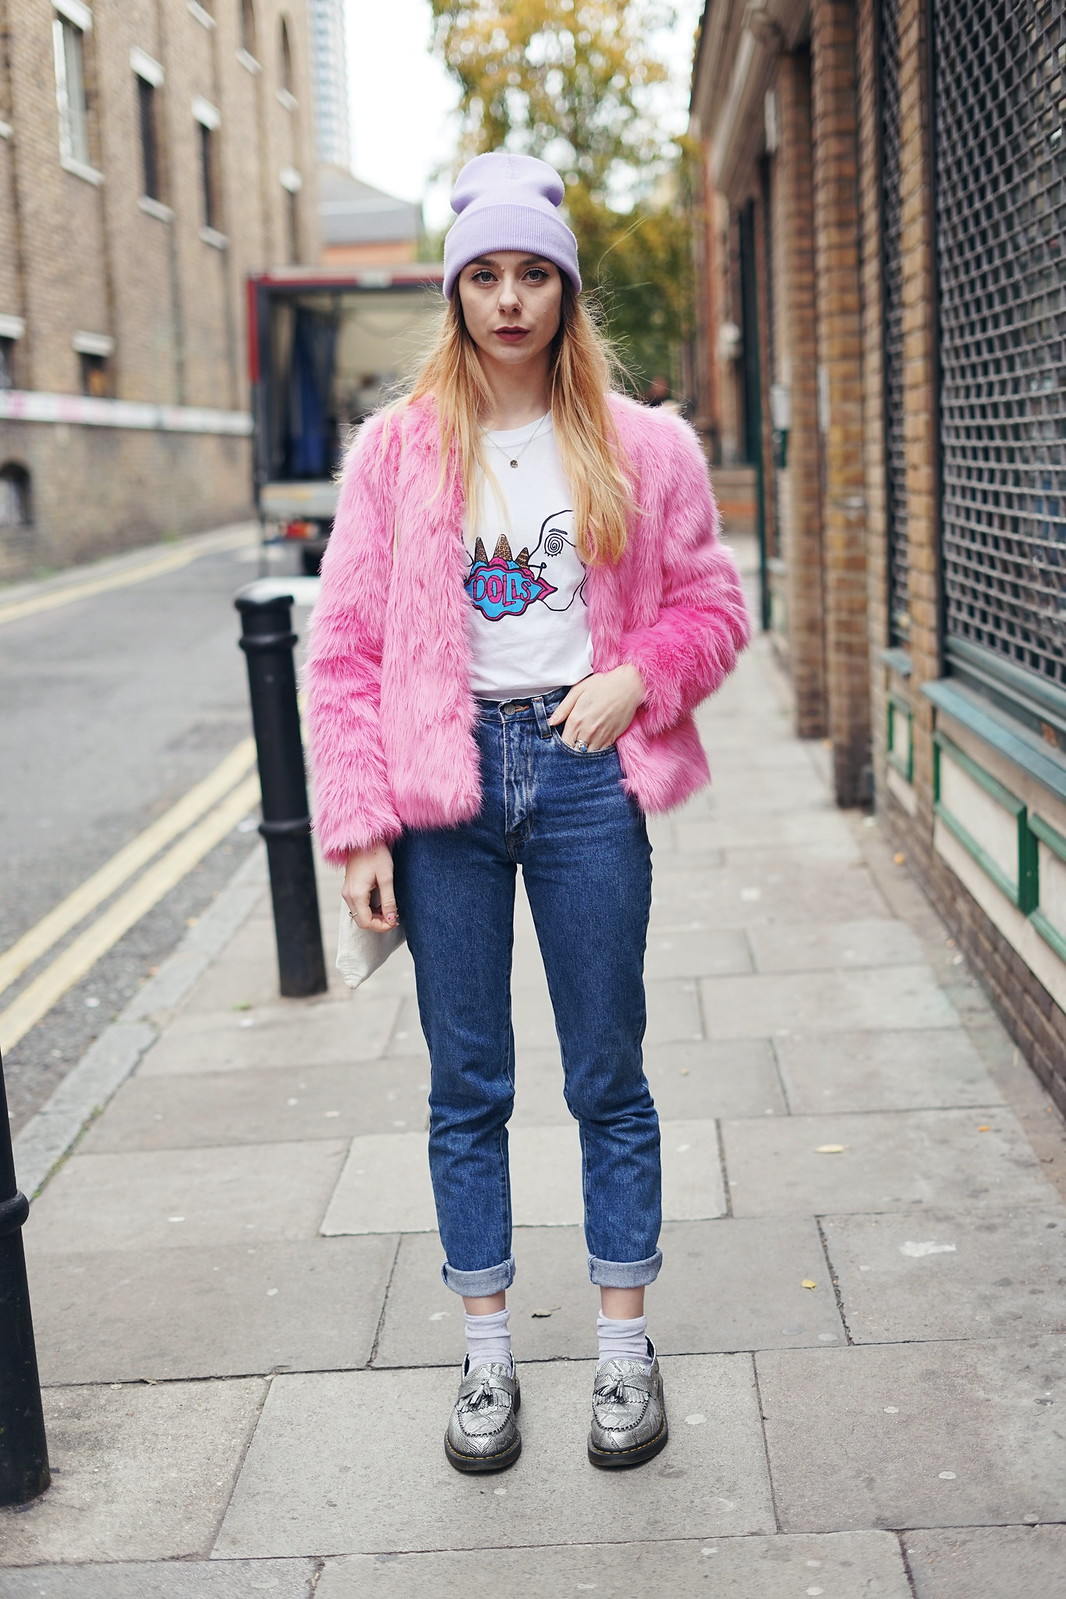 A band tee and a faux fur coat